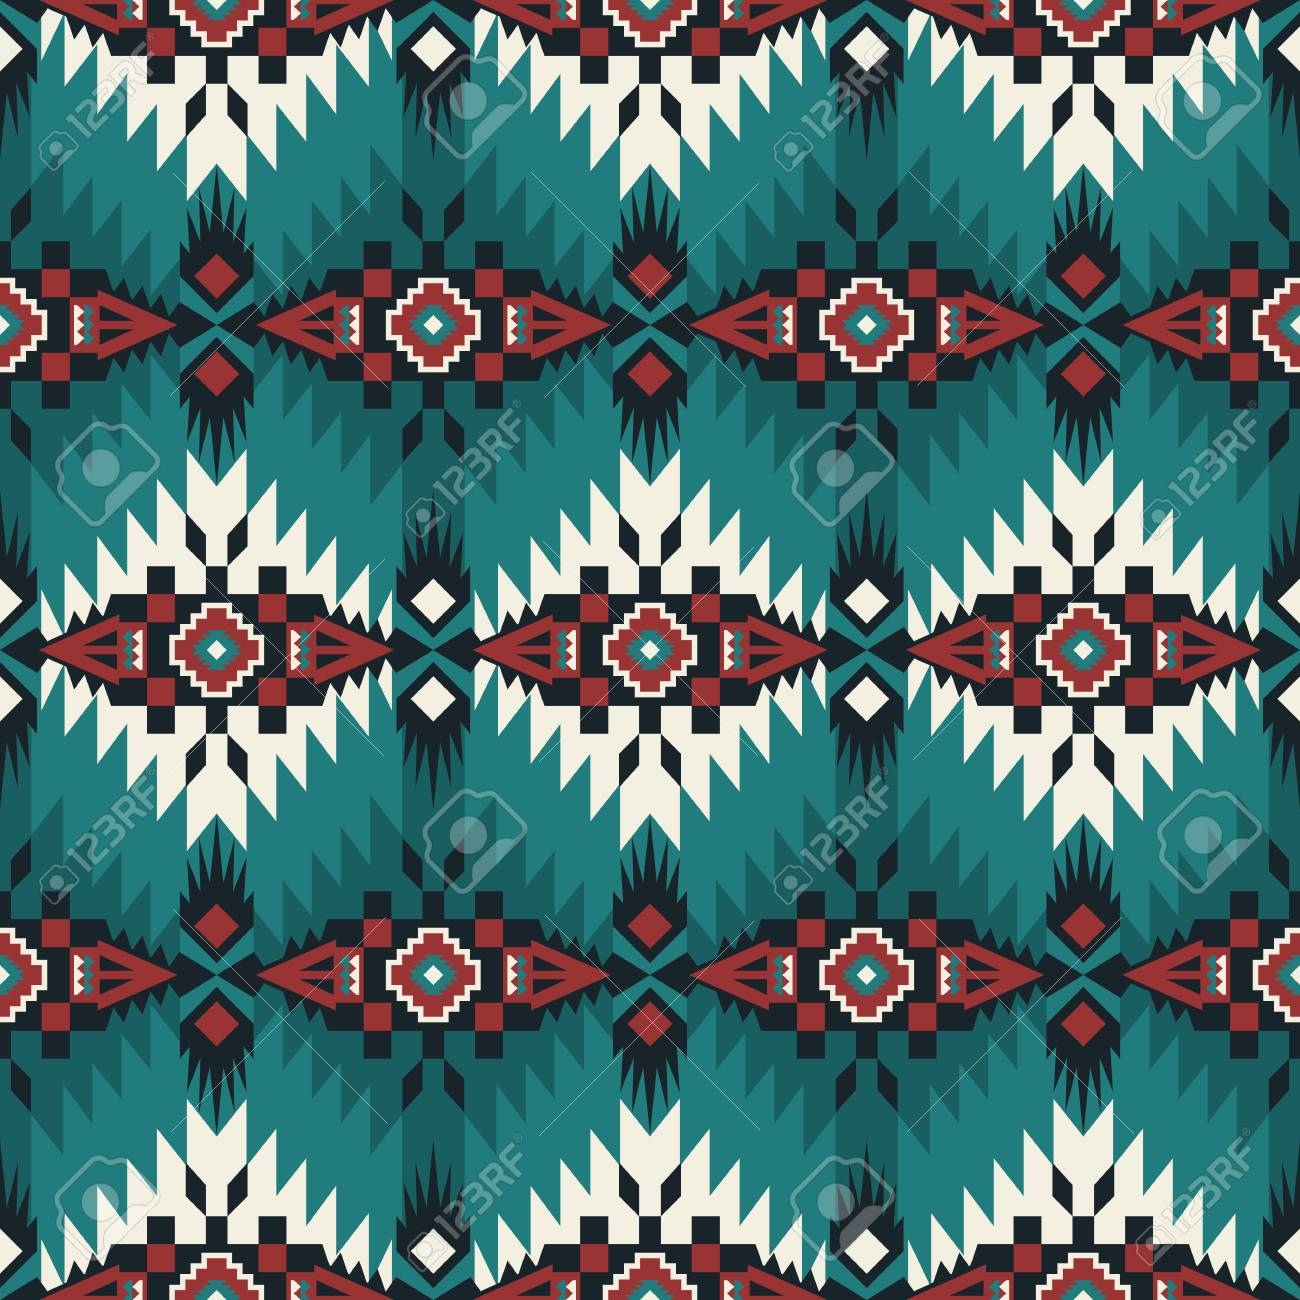 Aztec geometric seamless pattern. Native American, Indian Southwest print. Ethnic design wallpaper, fabric, cover, textile, rug, blanket. - 118997879